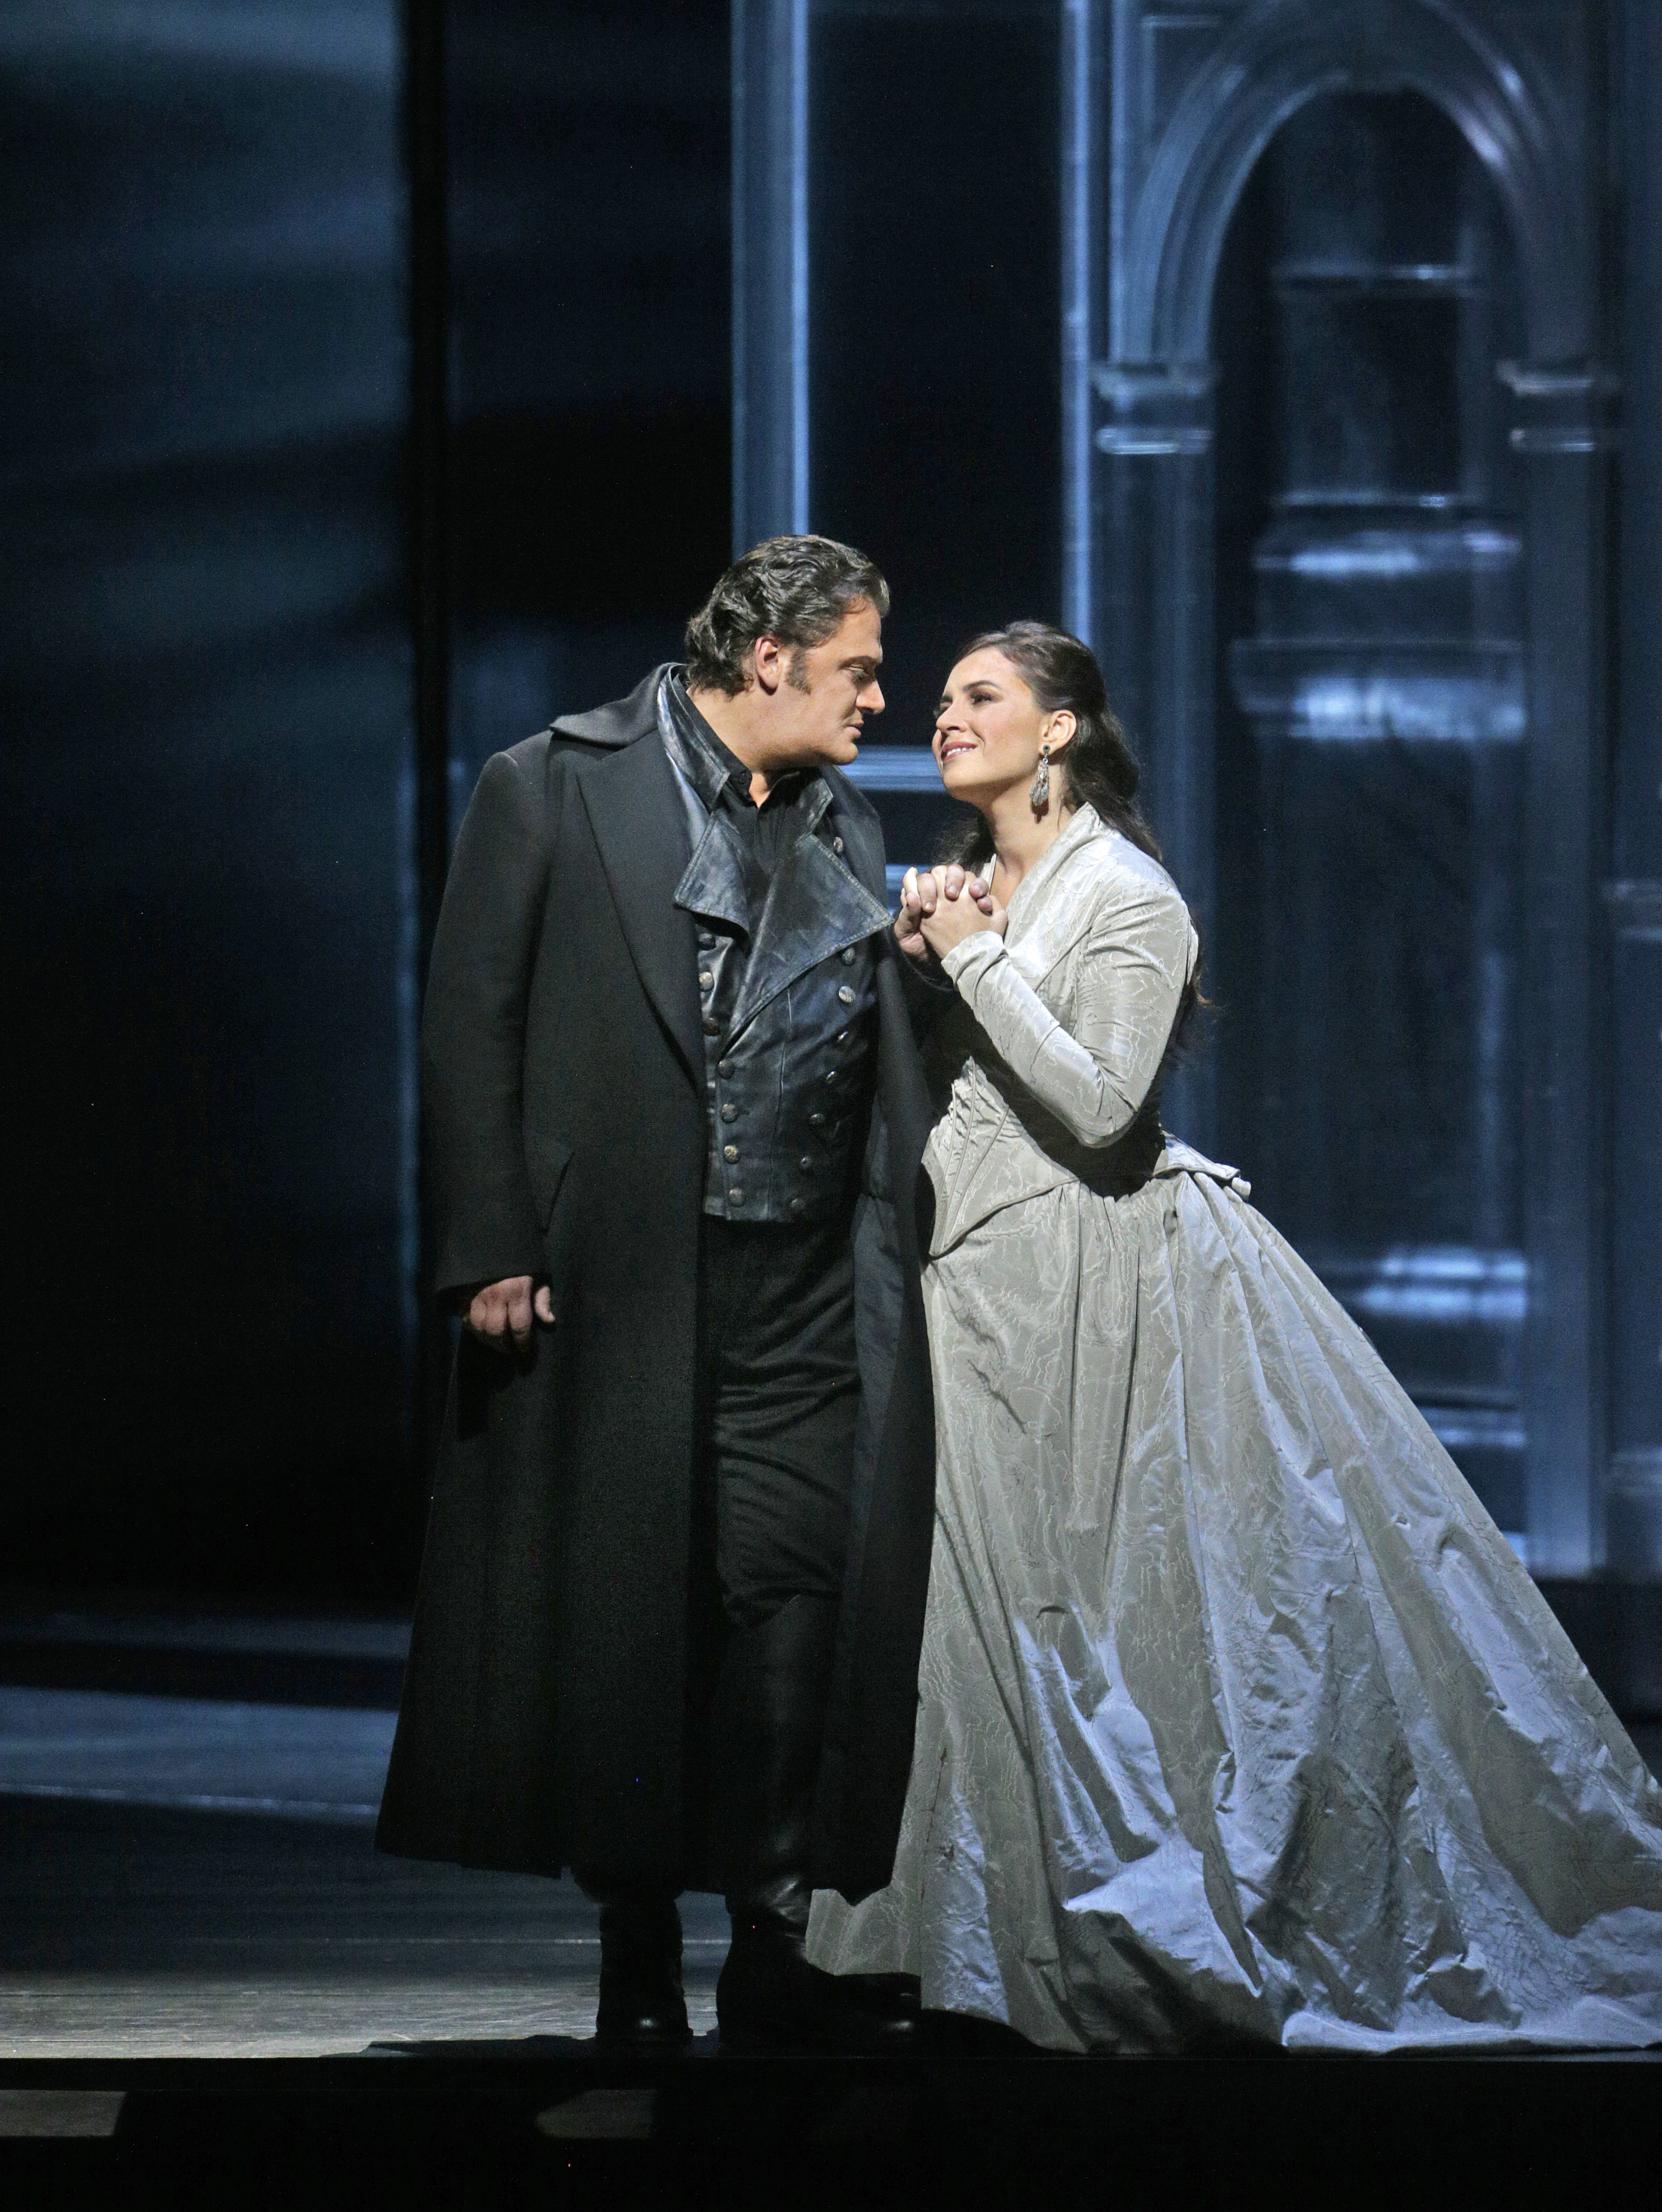 Otello (Aleksandrs Antonenko) has just returned from battle and he and Desdemona (Sonya Yoncheva) sing about their love for each other.